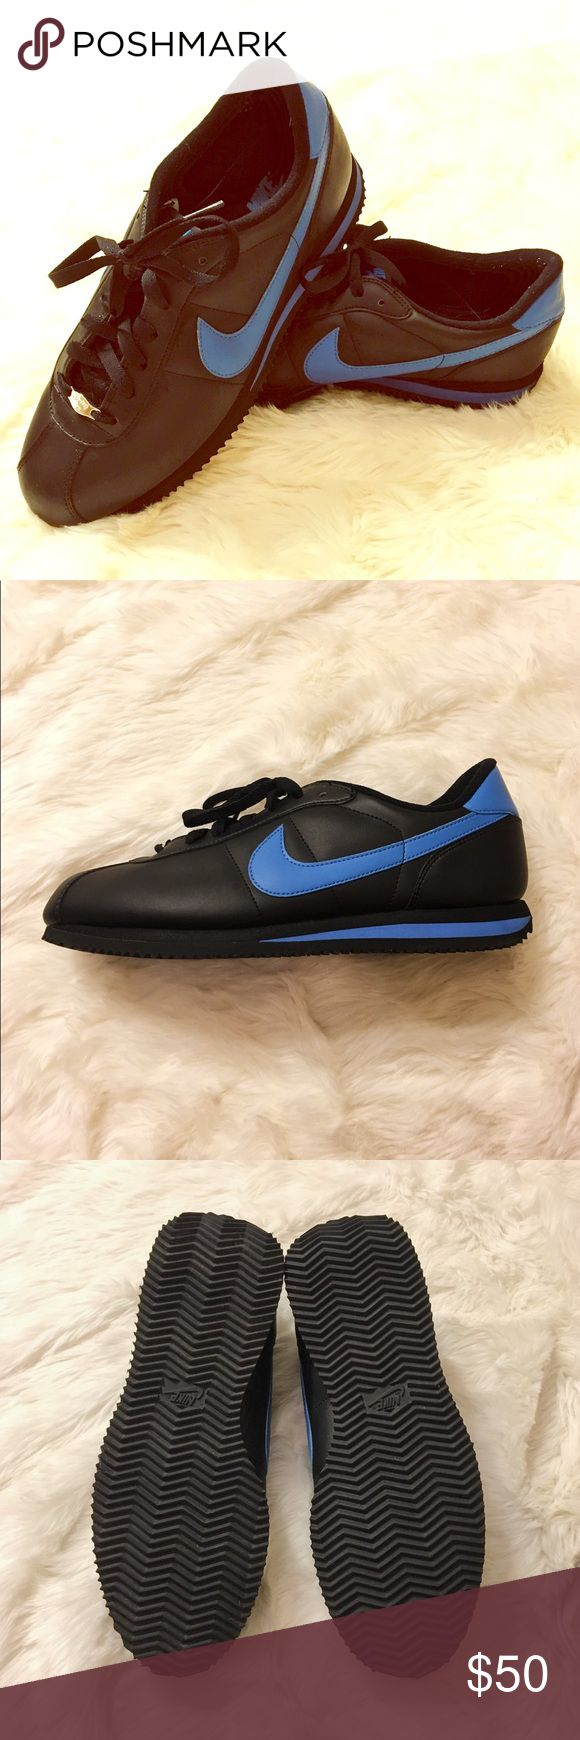 official photos 7b256 161d4 ... NWB Nike Cortez Leather Sneakers NWT